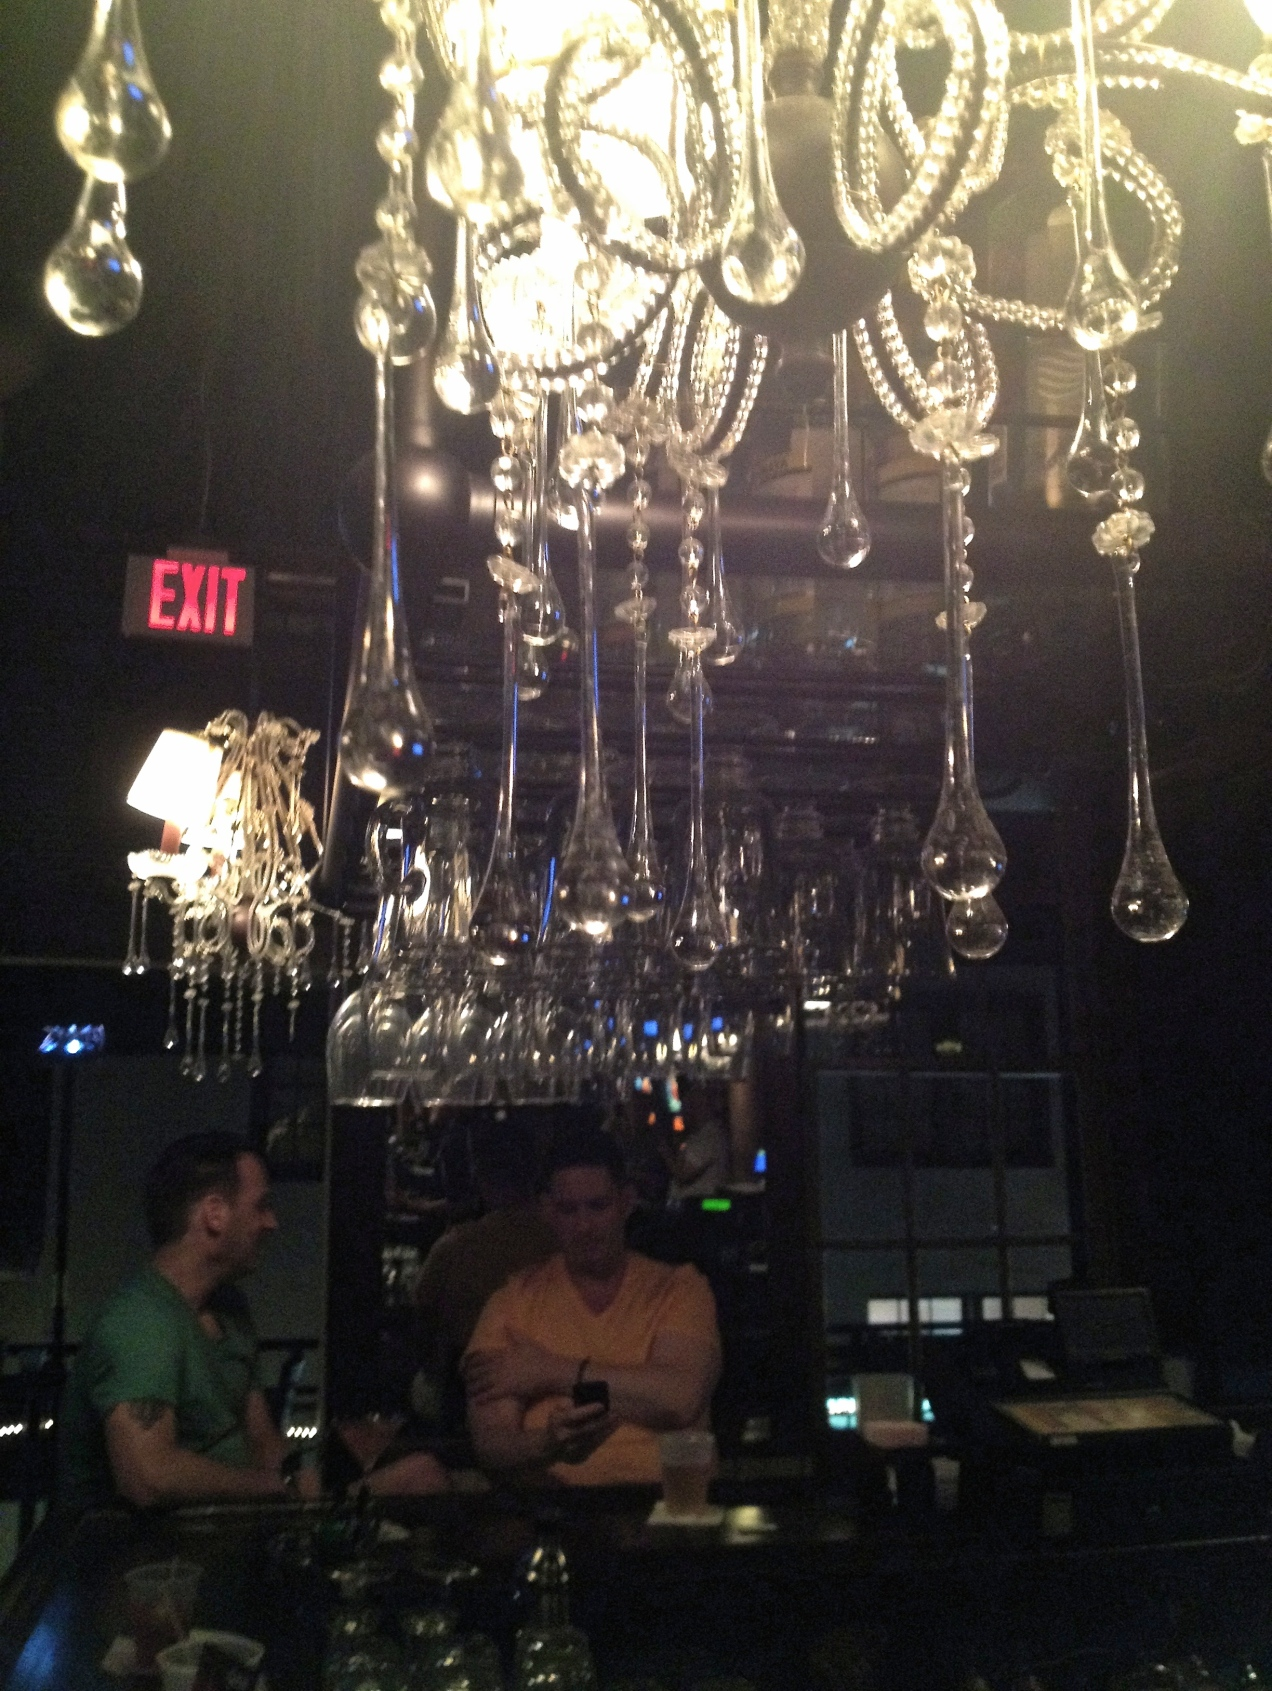 Upstairs at Cafe Lafitte in Exile, with chandelier.